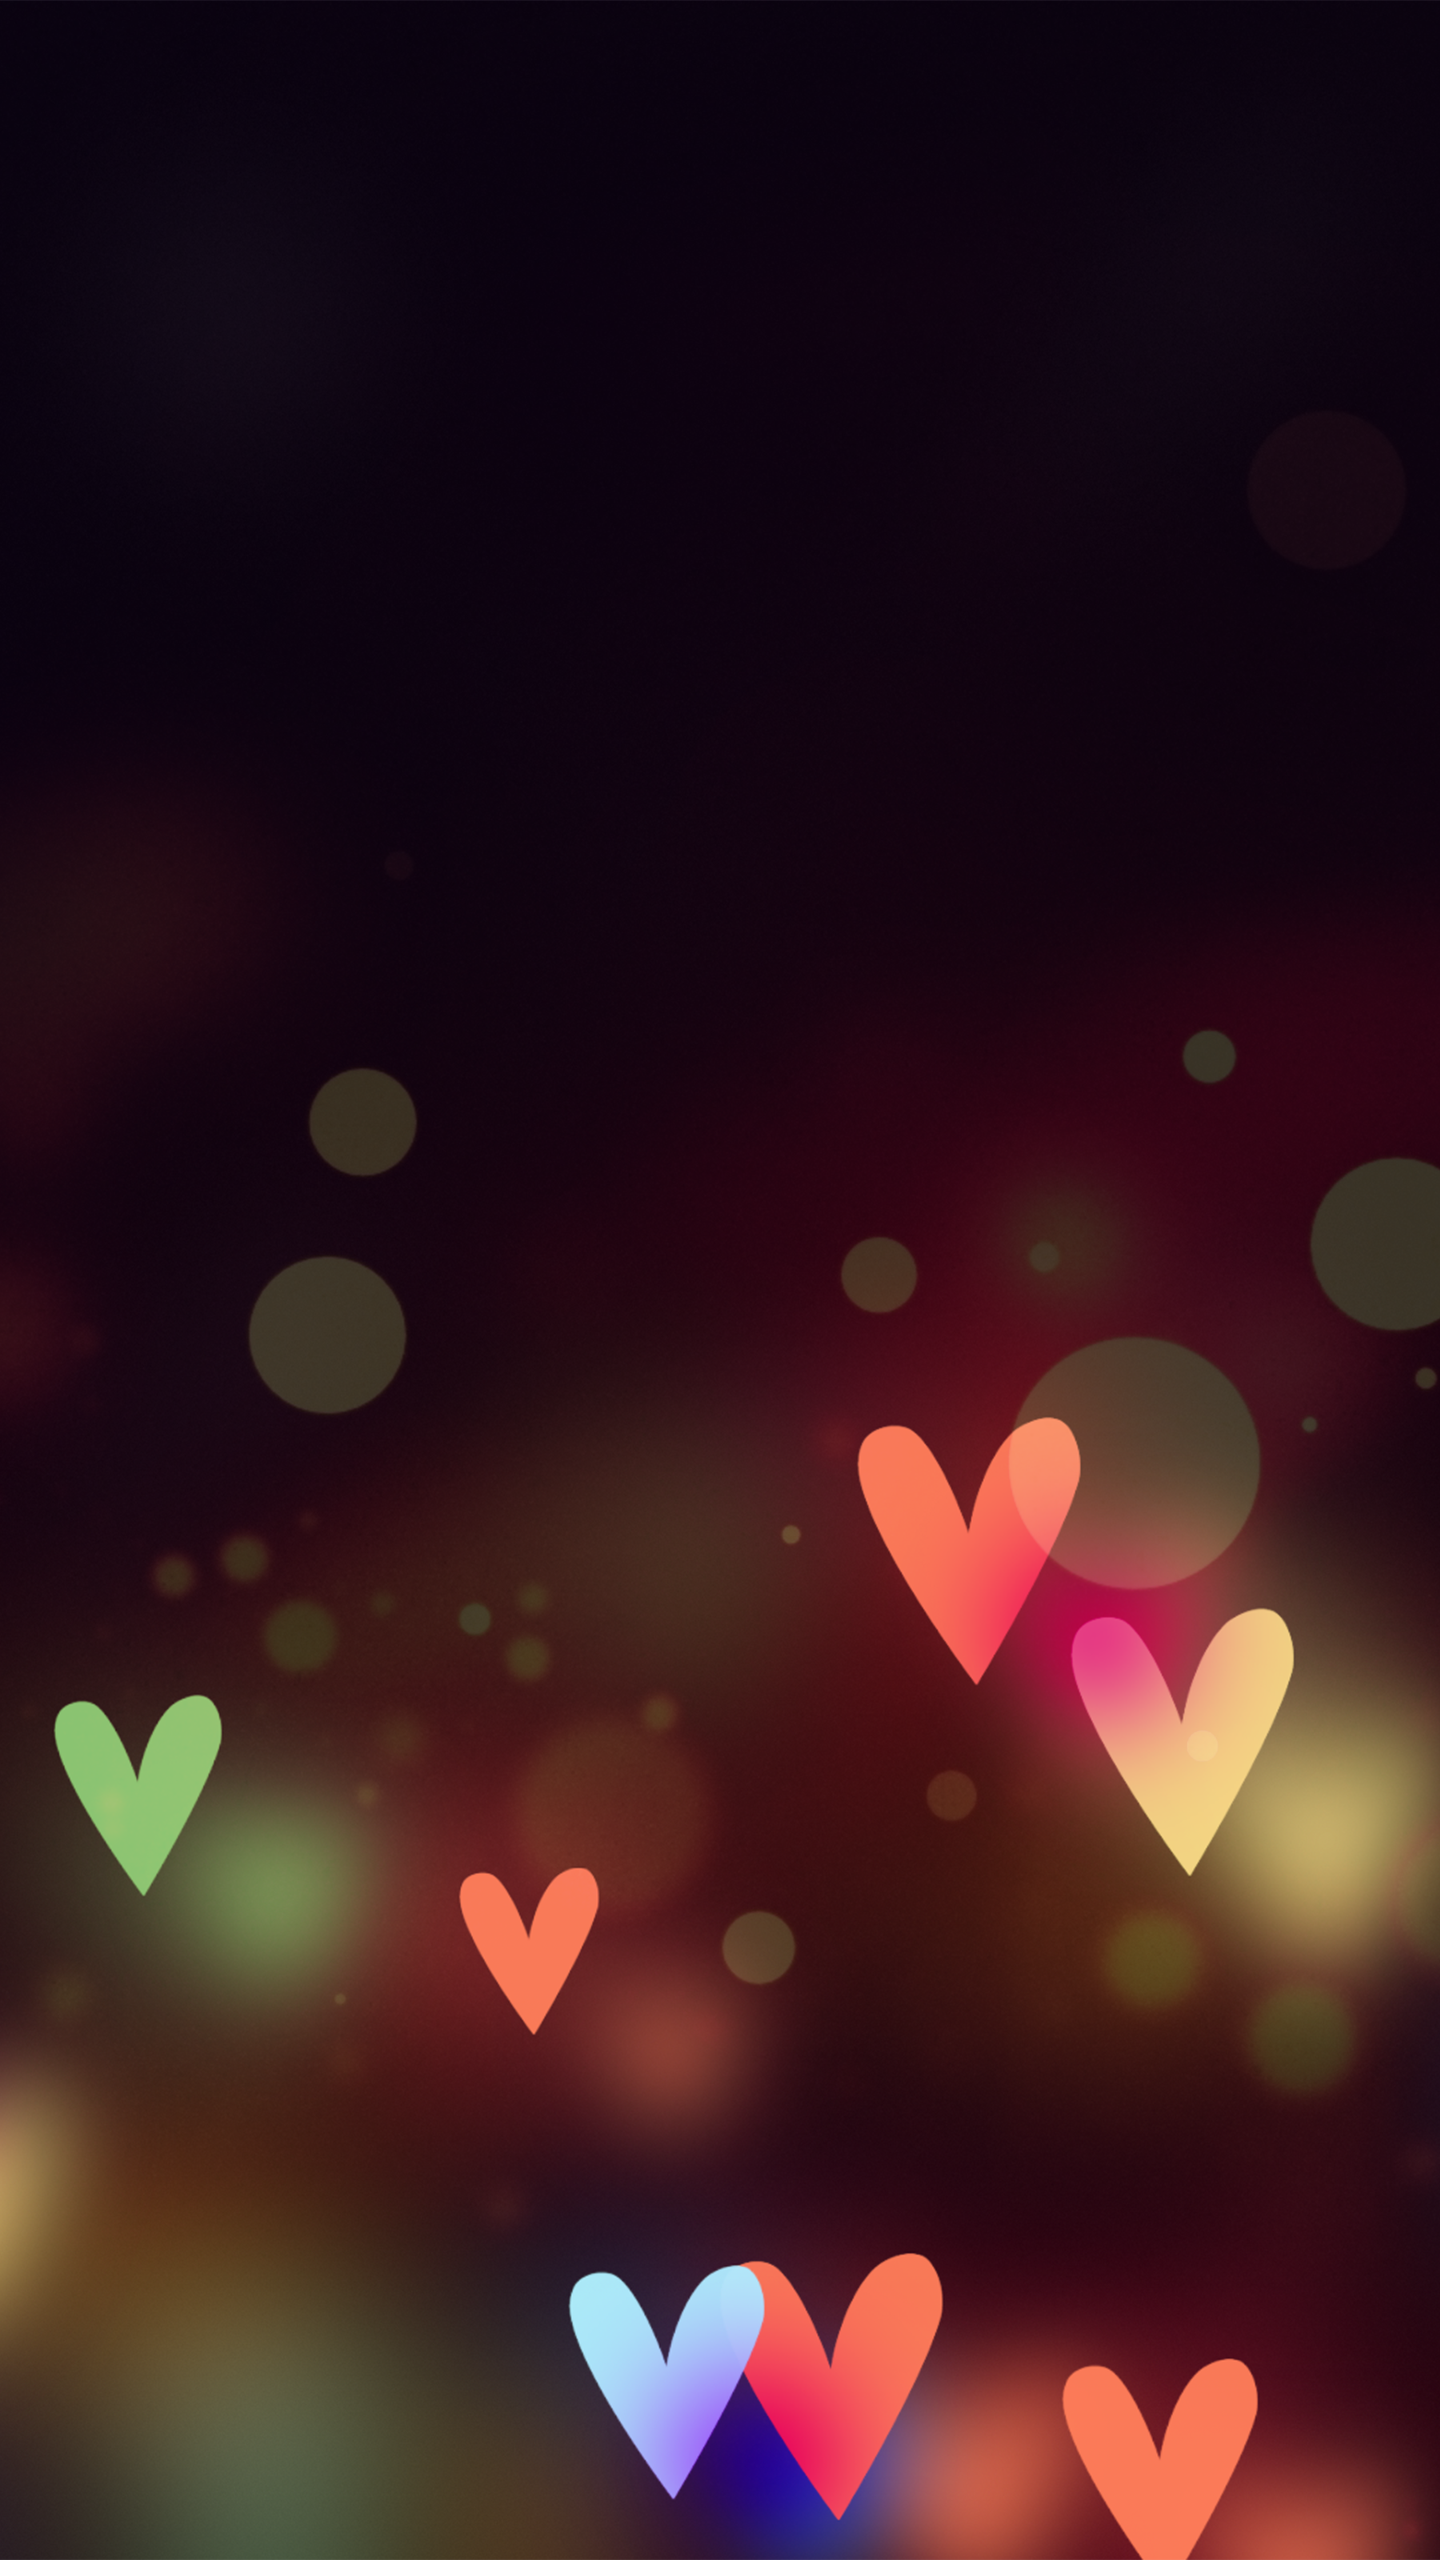 I Love You Wallpapers For Iphone 4 : Love Wallpaper iPhone 6S Plus by lirking20 on DeviantArt